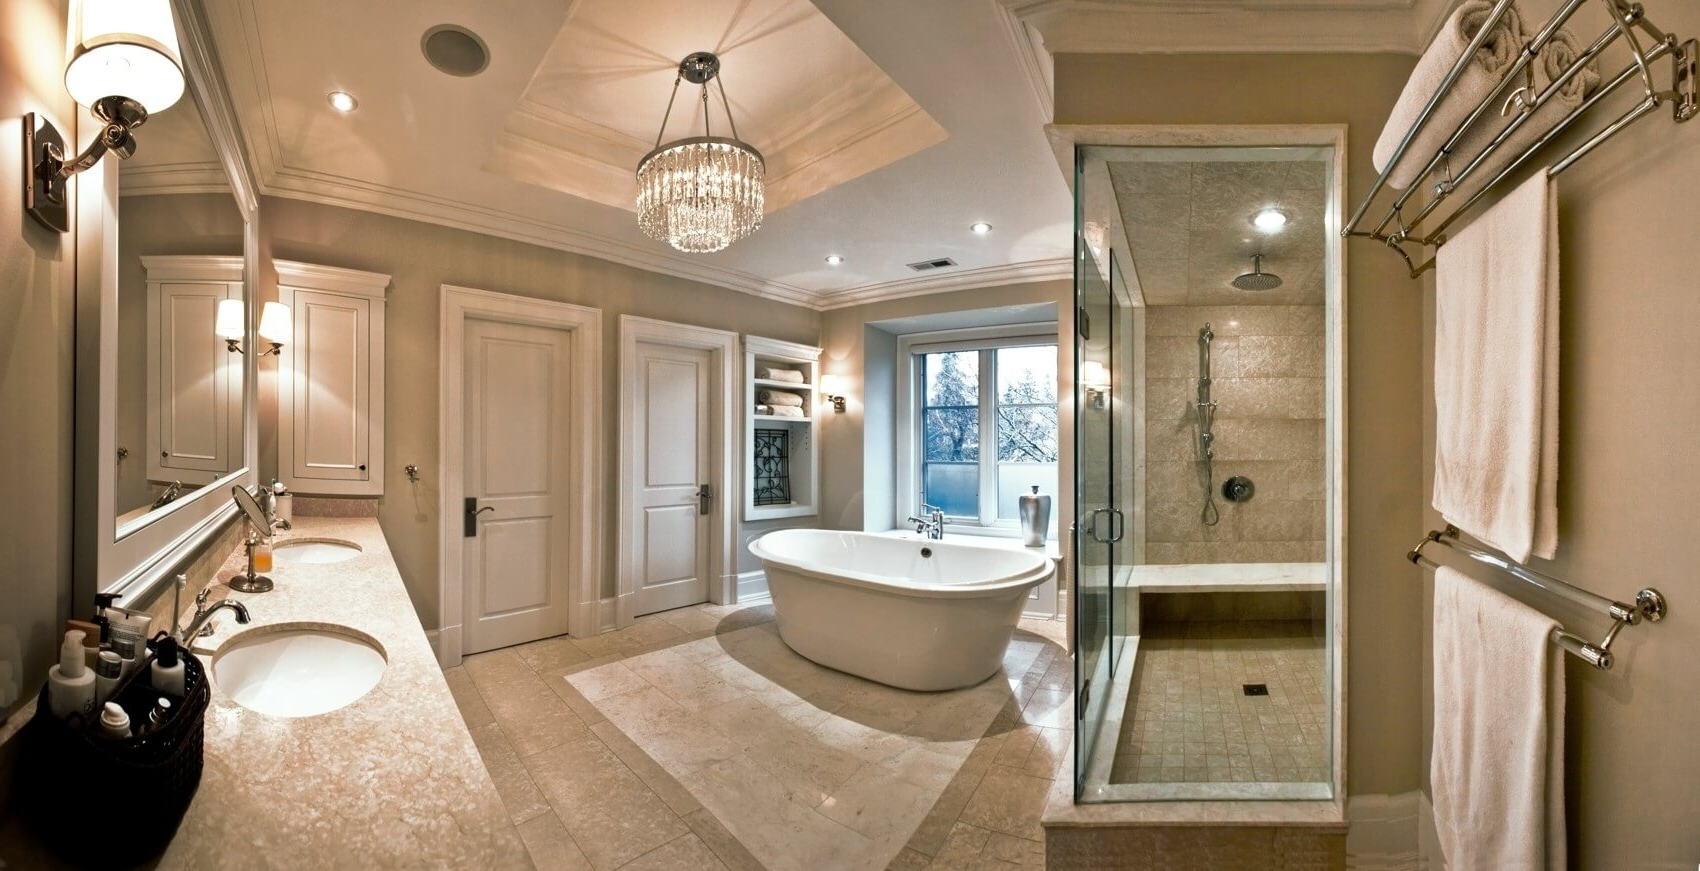 Layered Lighting With Crystal Chandeliers – Doing It The Glow Way For Well Known Crystal Bathroom Chandelier (View 15 of 20)